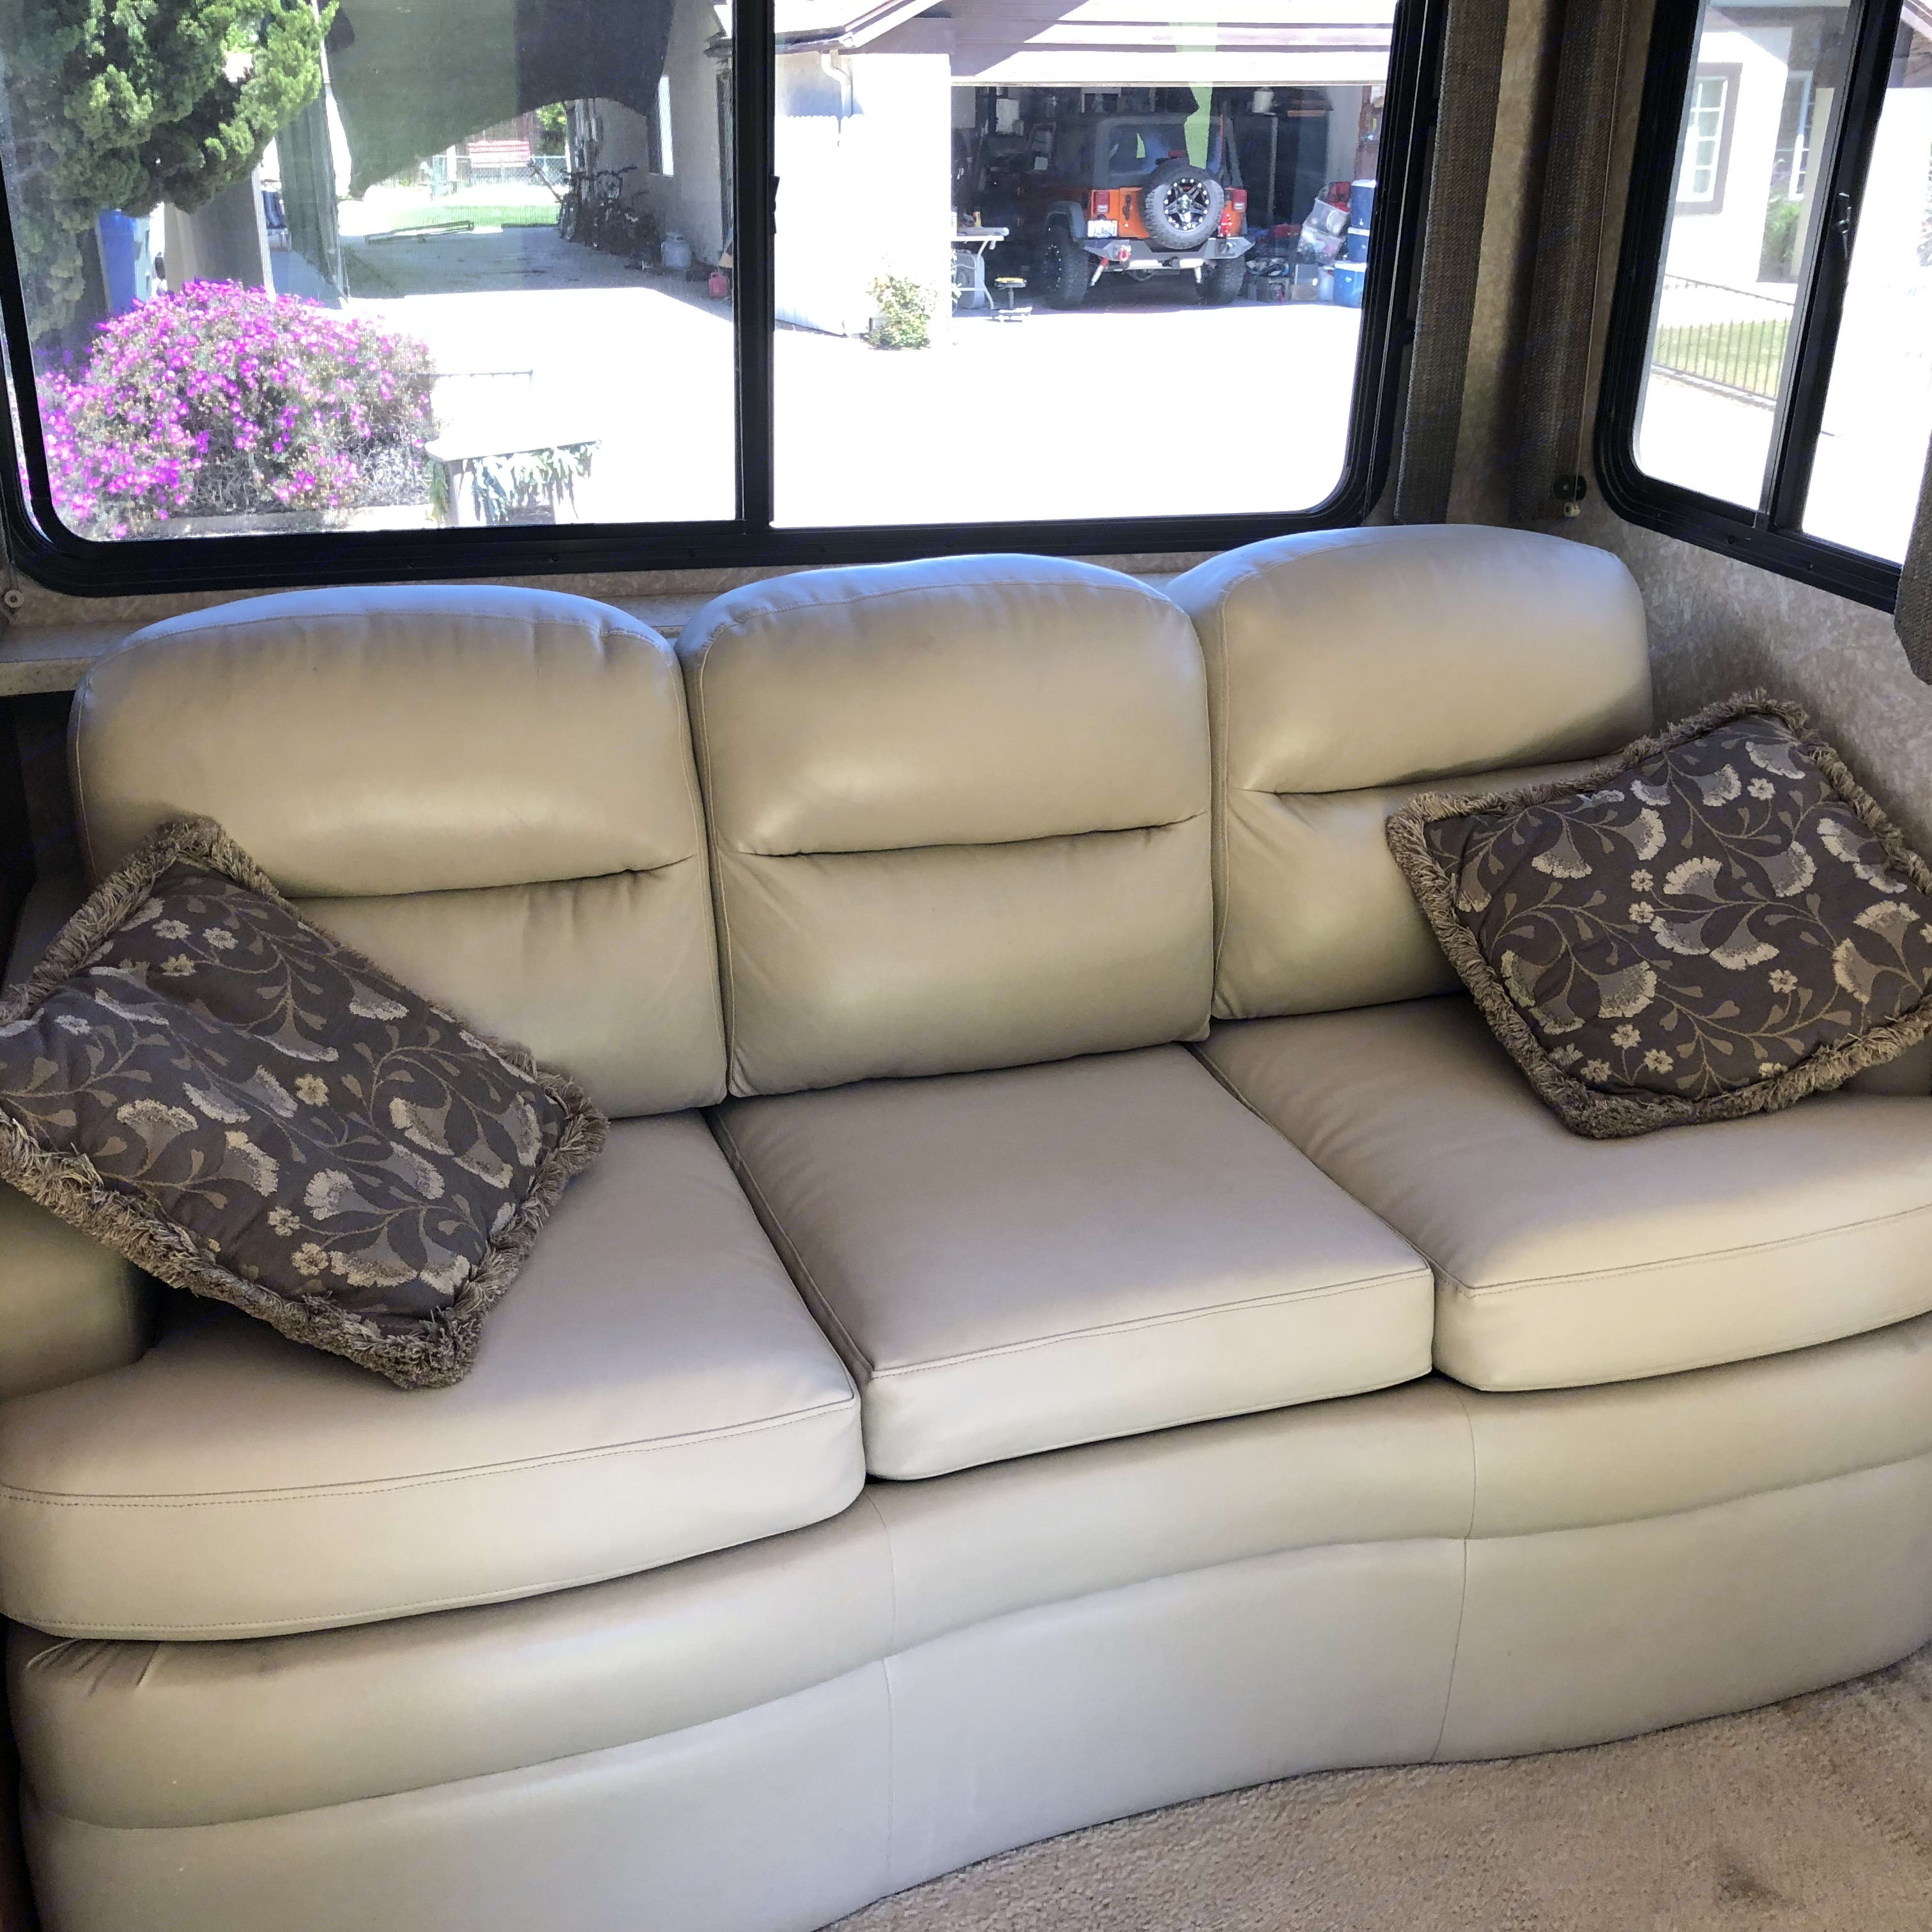 The couch folds out for 2 to sleep. Thor Motor Coach Four Winds 2007